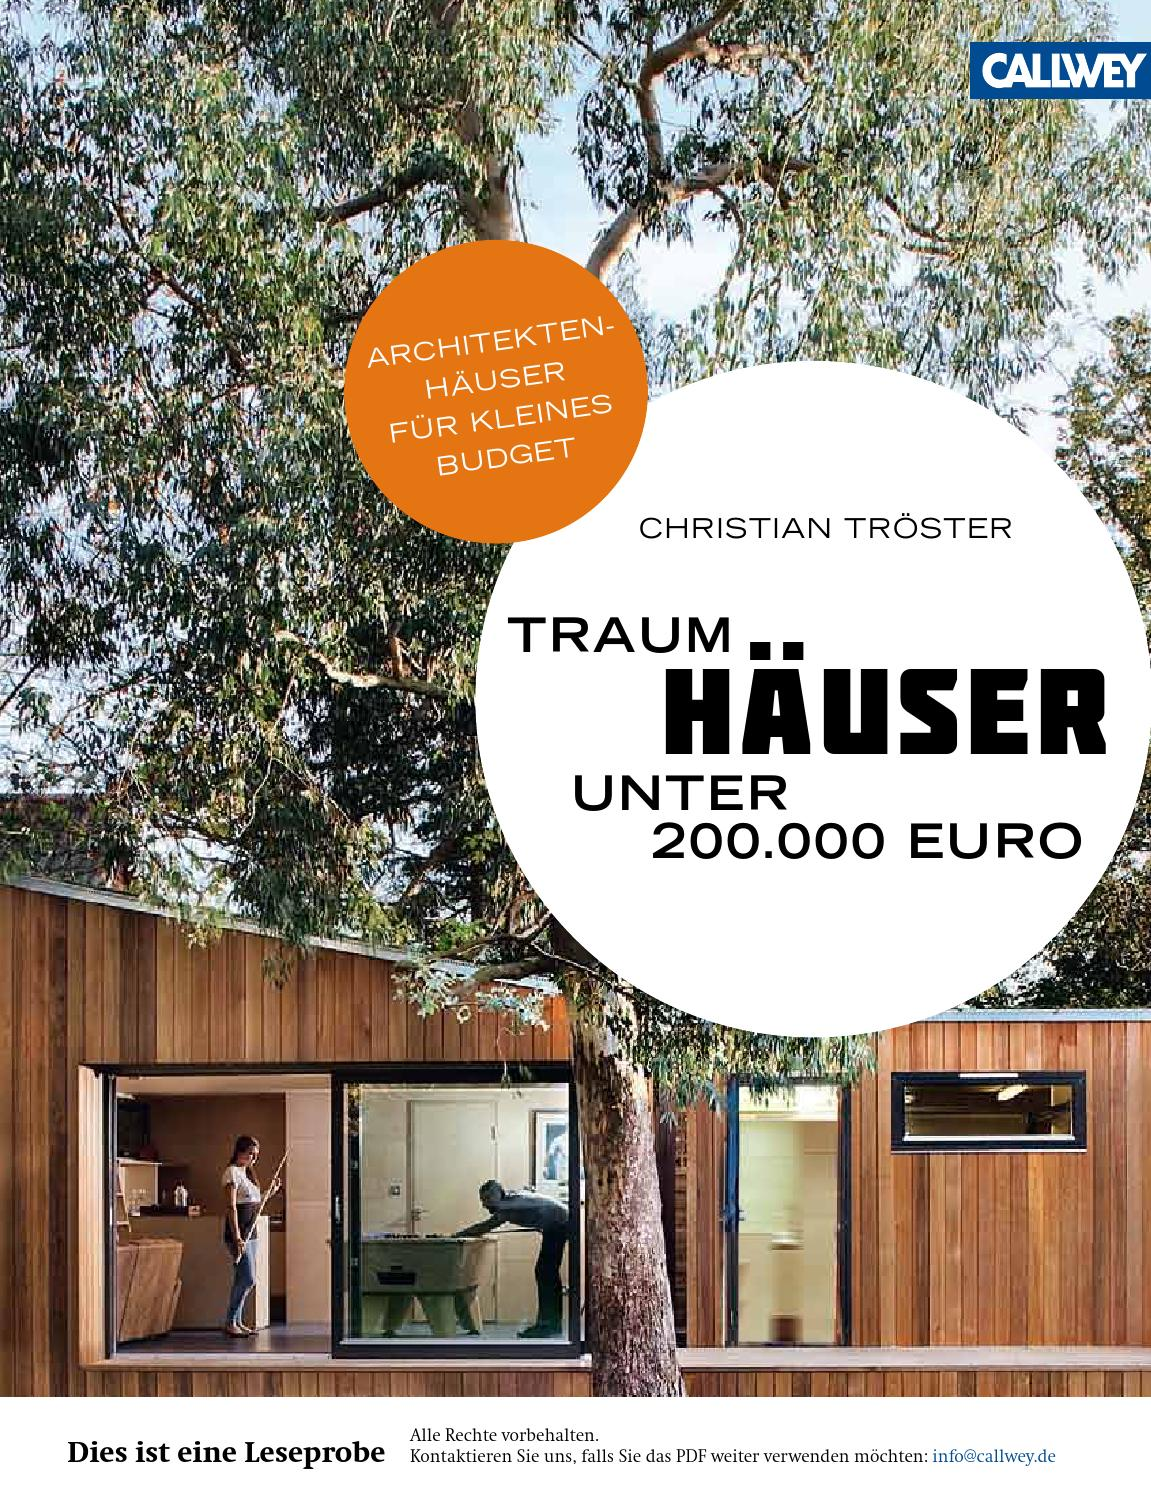 troester traumhaeuser unter euro callwey issuu by. Black Bedroom Furniture Sets. Home Design Ideas